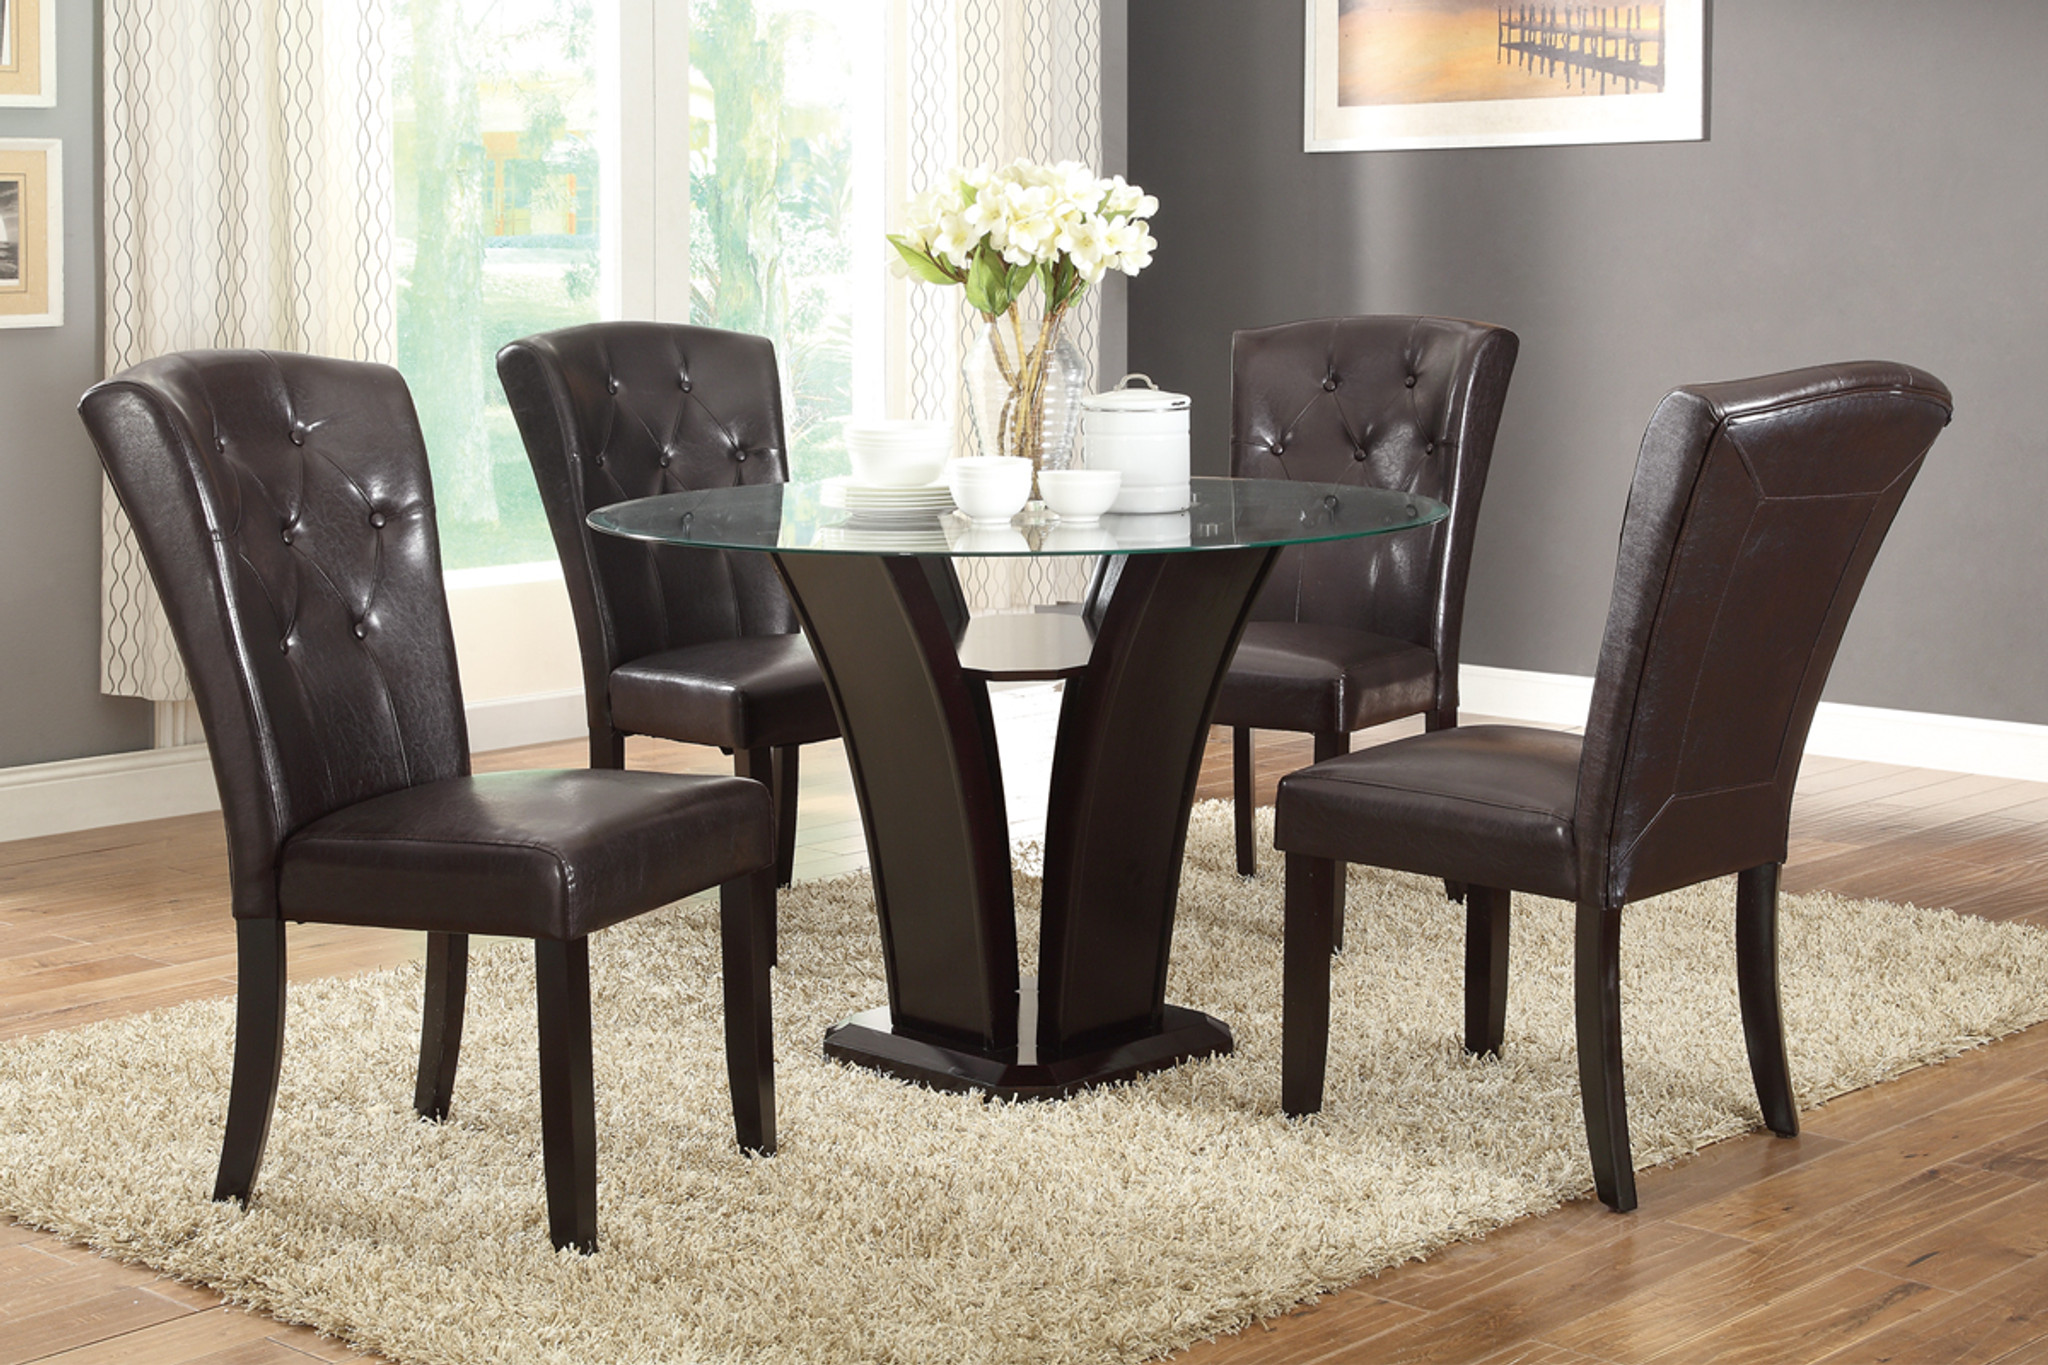 Picture of: 5 Piece Grandly Design Round Table Dark Espresso Faux Leather Dining Room Set Km Home Furniture